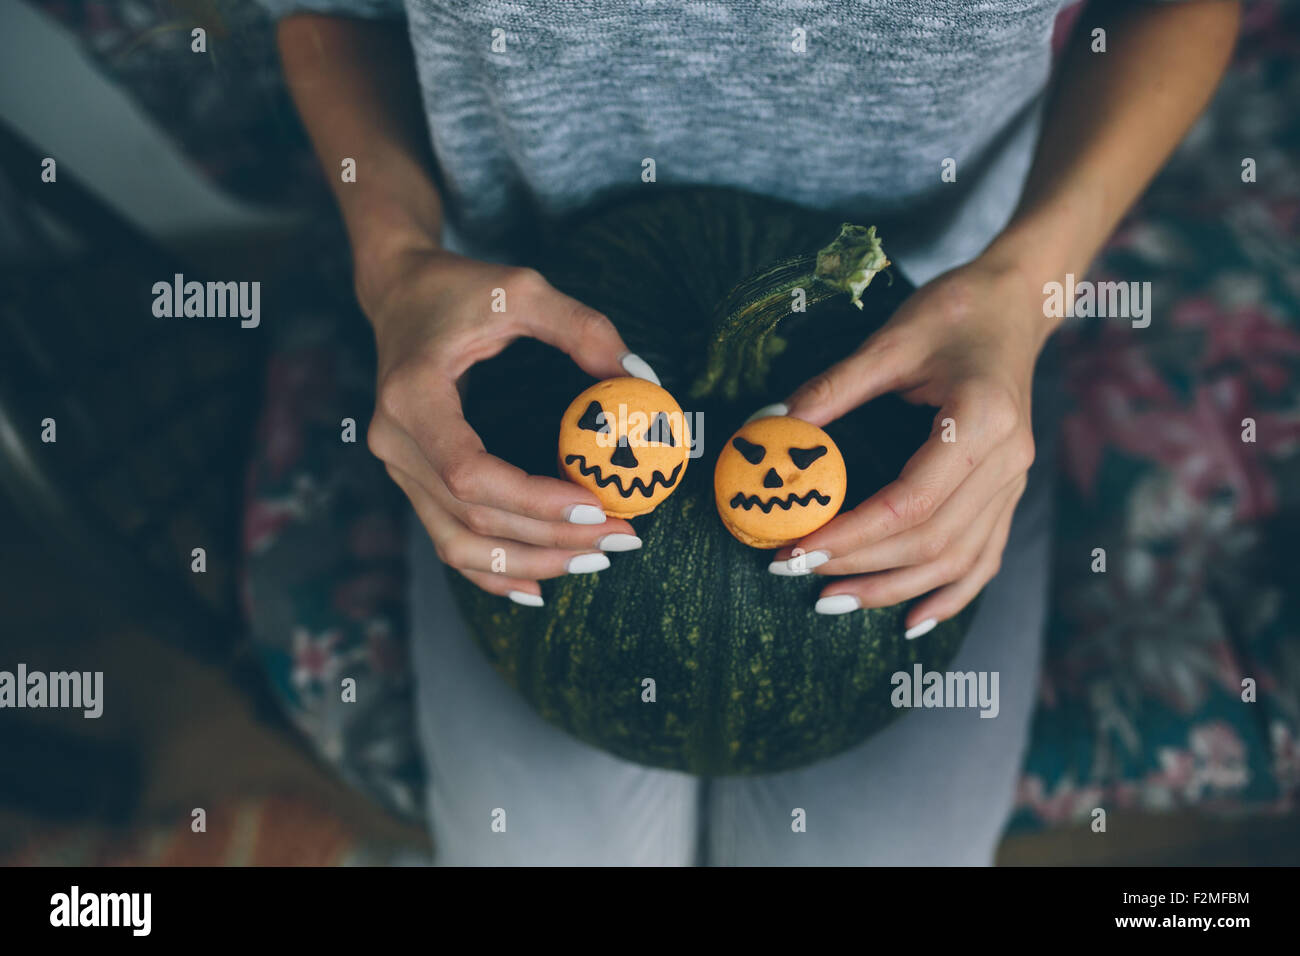 woman holding a biscuit for Halloween - Stock Image